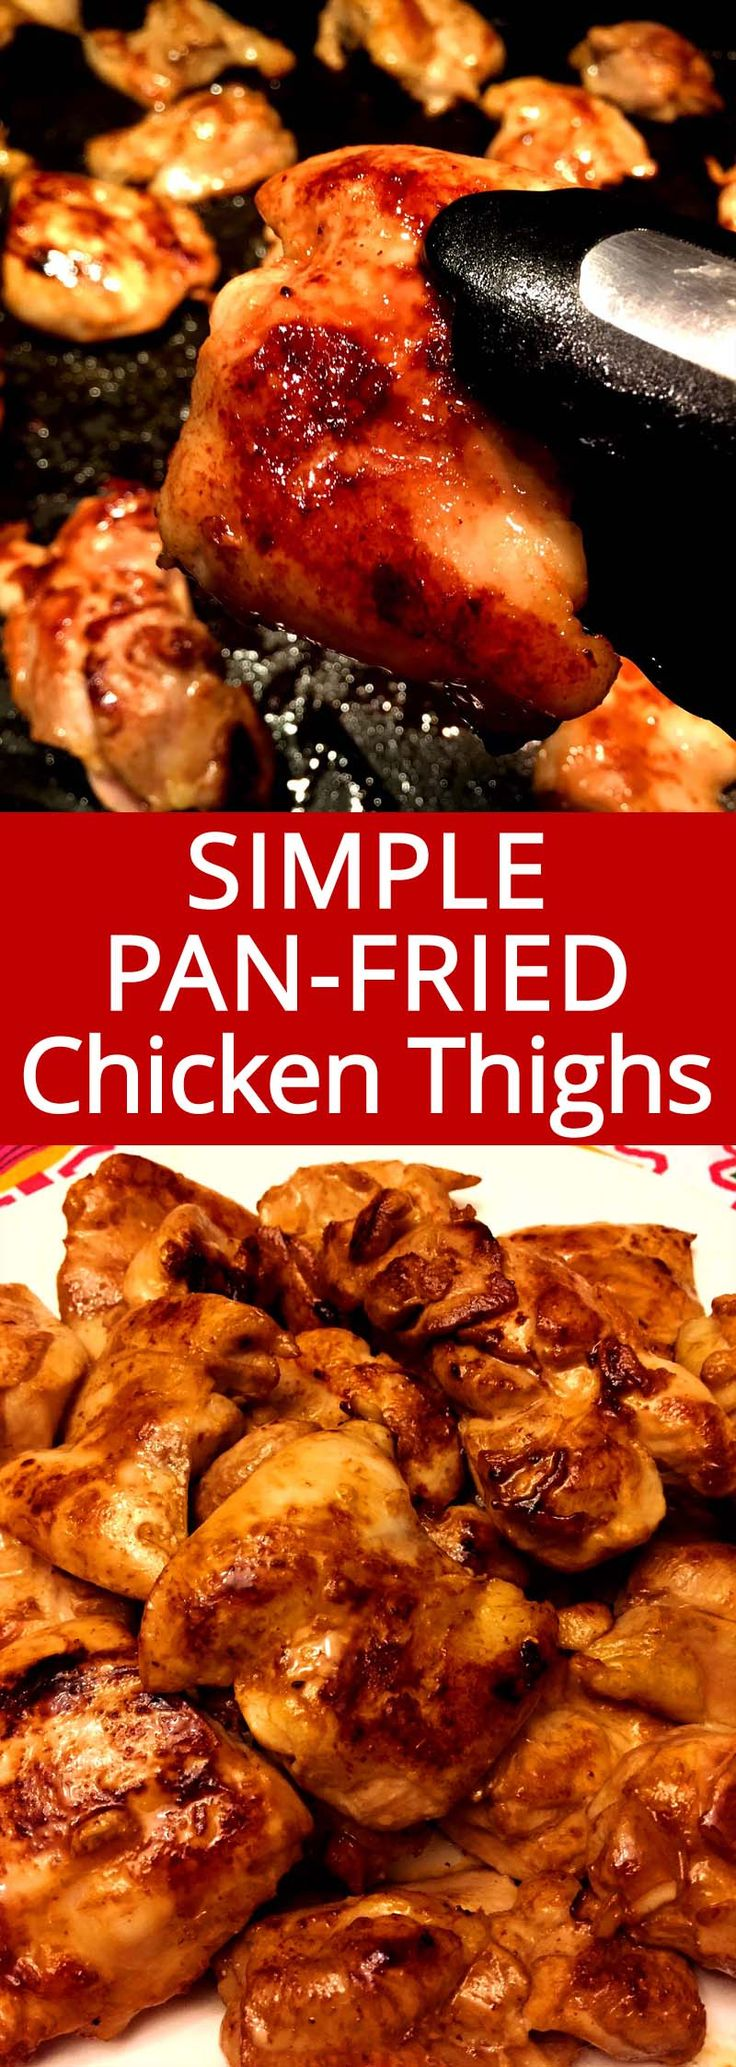 Easy Pan Fried Chicken Thighs Recette Recipes To Cook